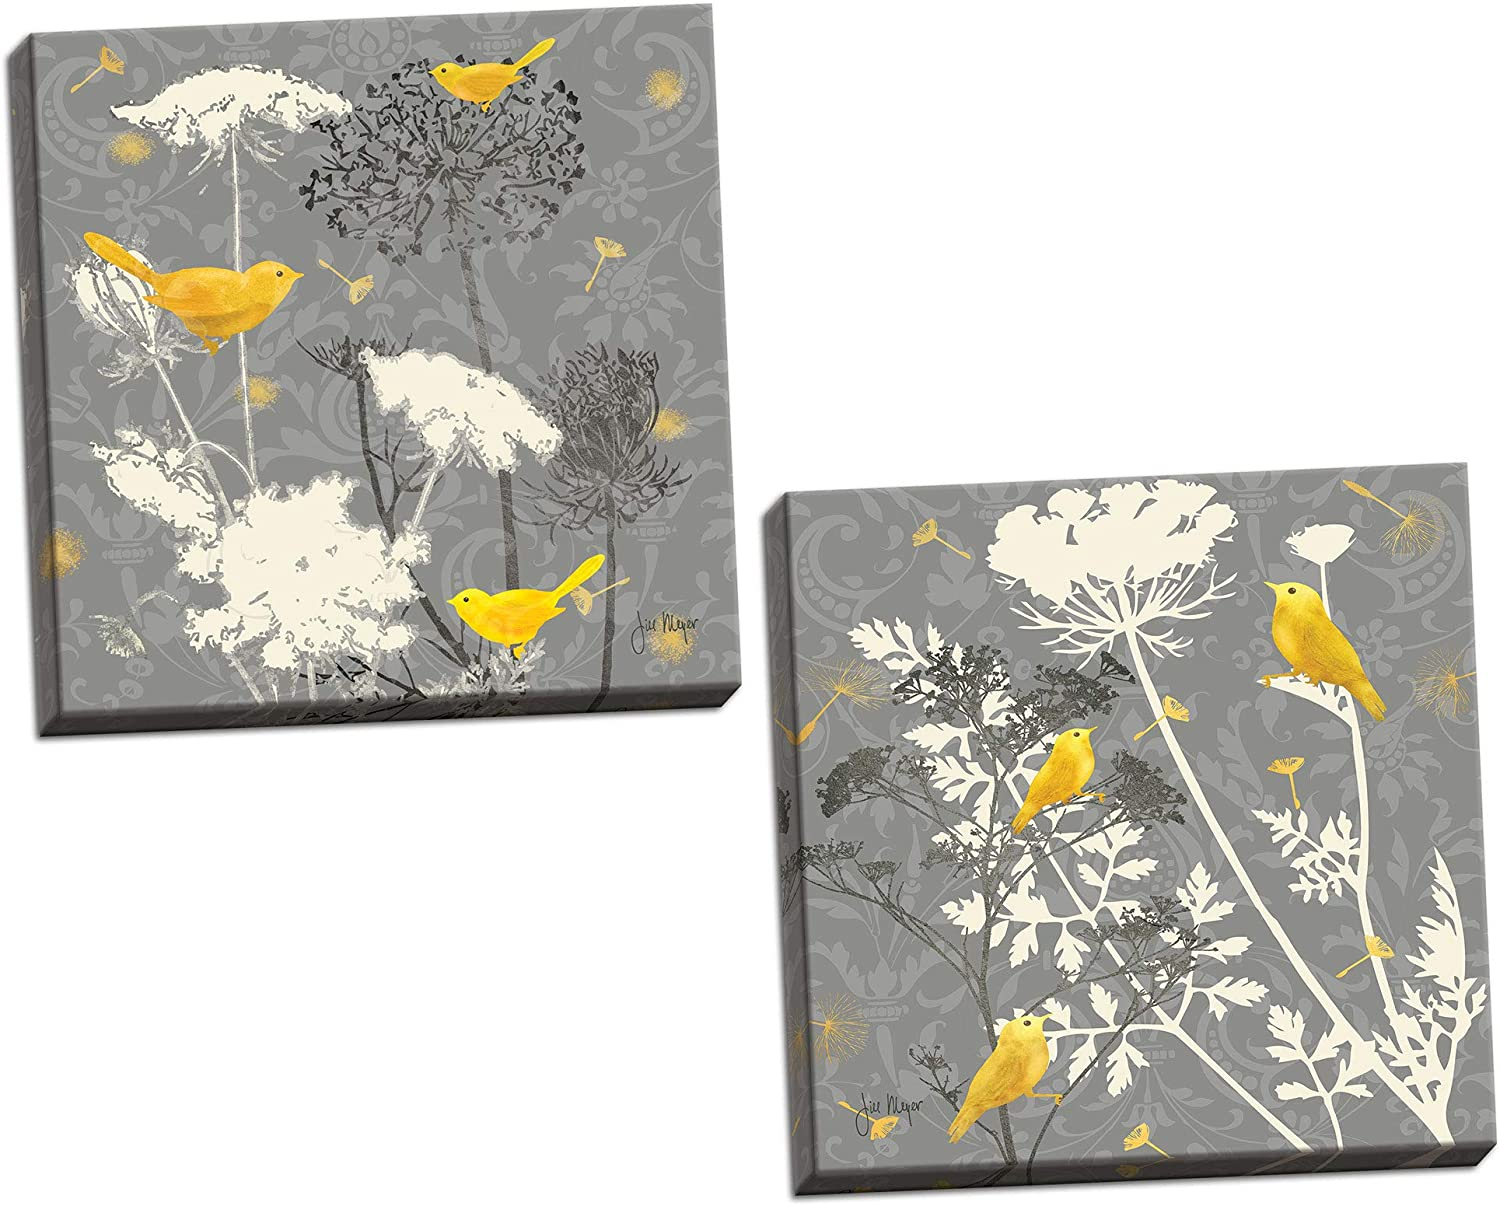 Gango Home Decor Gray Meadow Lace I Lovely Popular Grey and Yellow Finch Set; Two 16x16in Stretched Canvases; Ready to Hang!